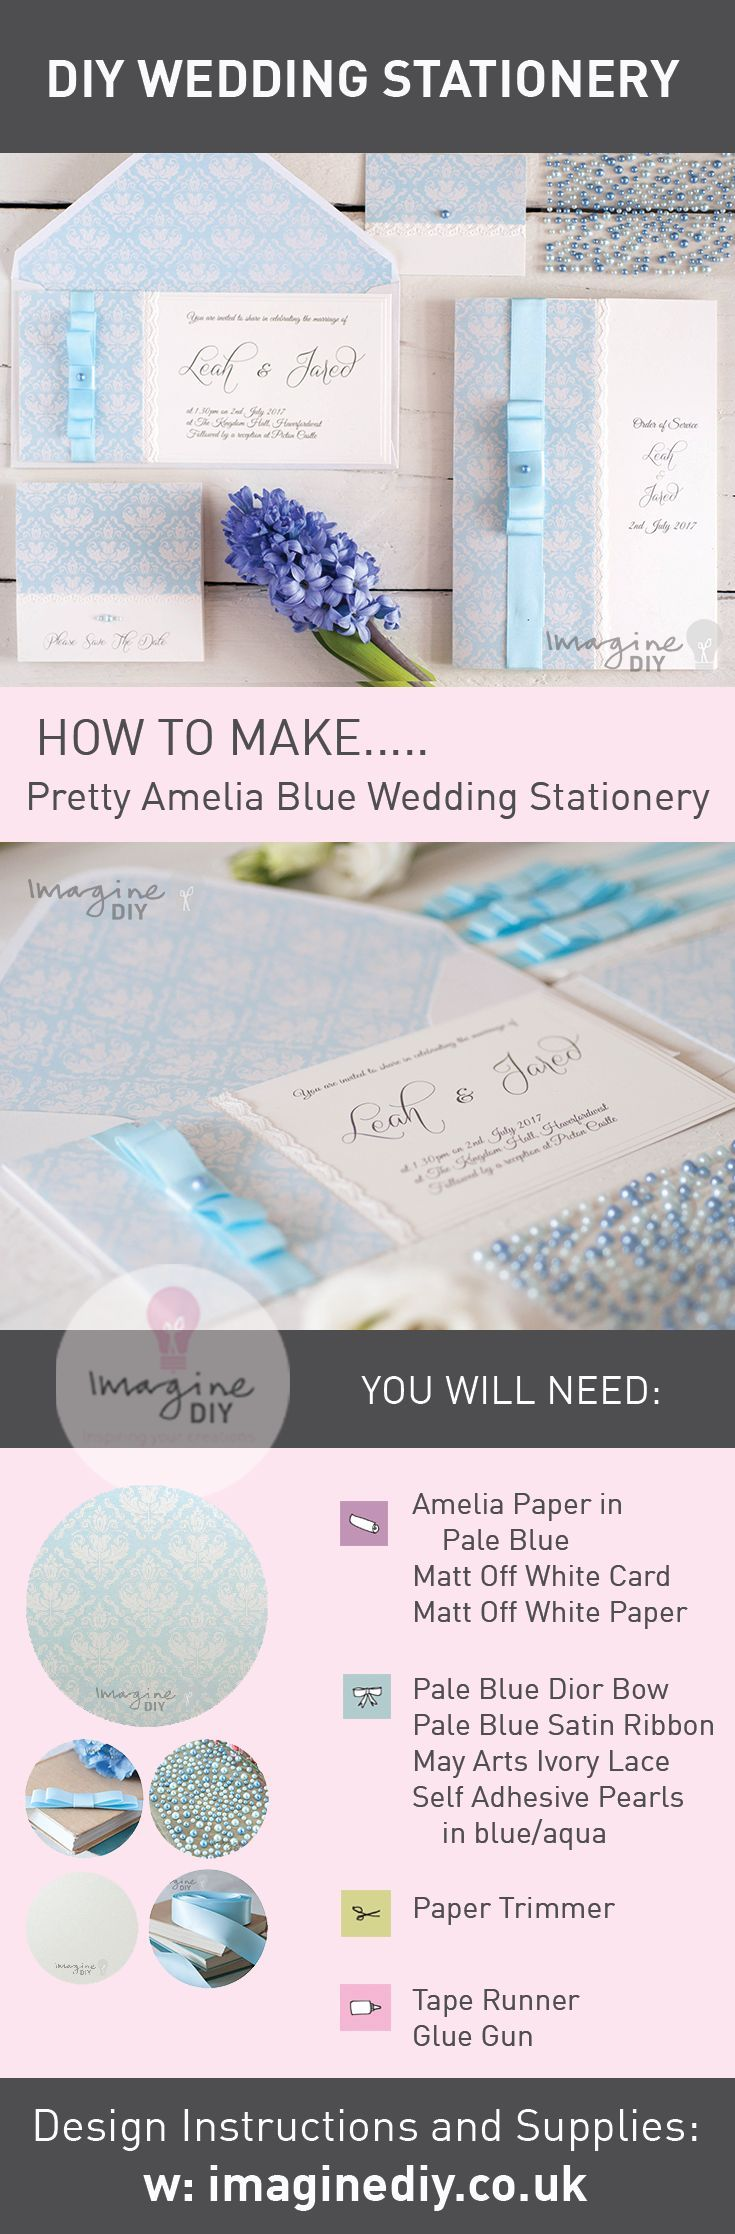 How to make your own wedding stationery. DIY wedding invitations and stationery.  Products and instructions available from Imagine DIY. EASY AND LOW COST.  DIY wedding stationery supplies from Imagine DIY.  Blue wedding idea.    #imaginediy #diywedding #diyweddingideas #diyweddingstationery #bluewedding #diyweddinginvitations #diyweddingidea #diyweddinginvites #diyweddingstationery #diyweddinginvitations #blueweddingideas